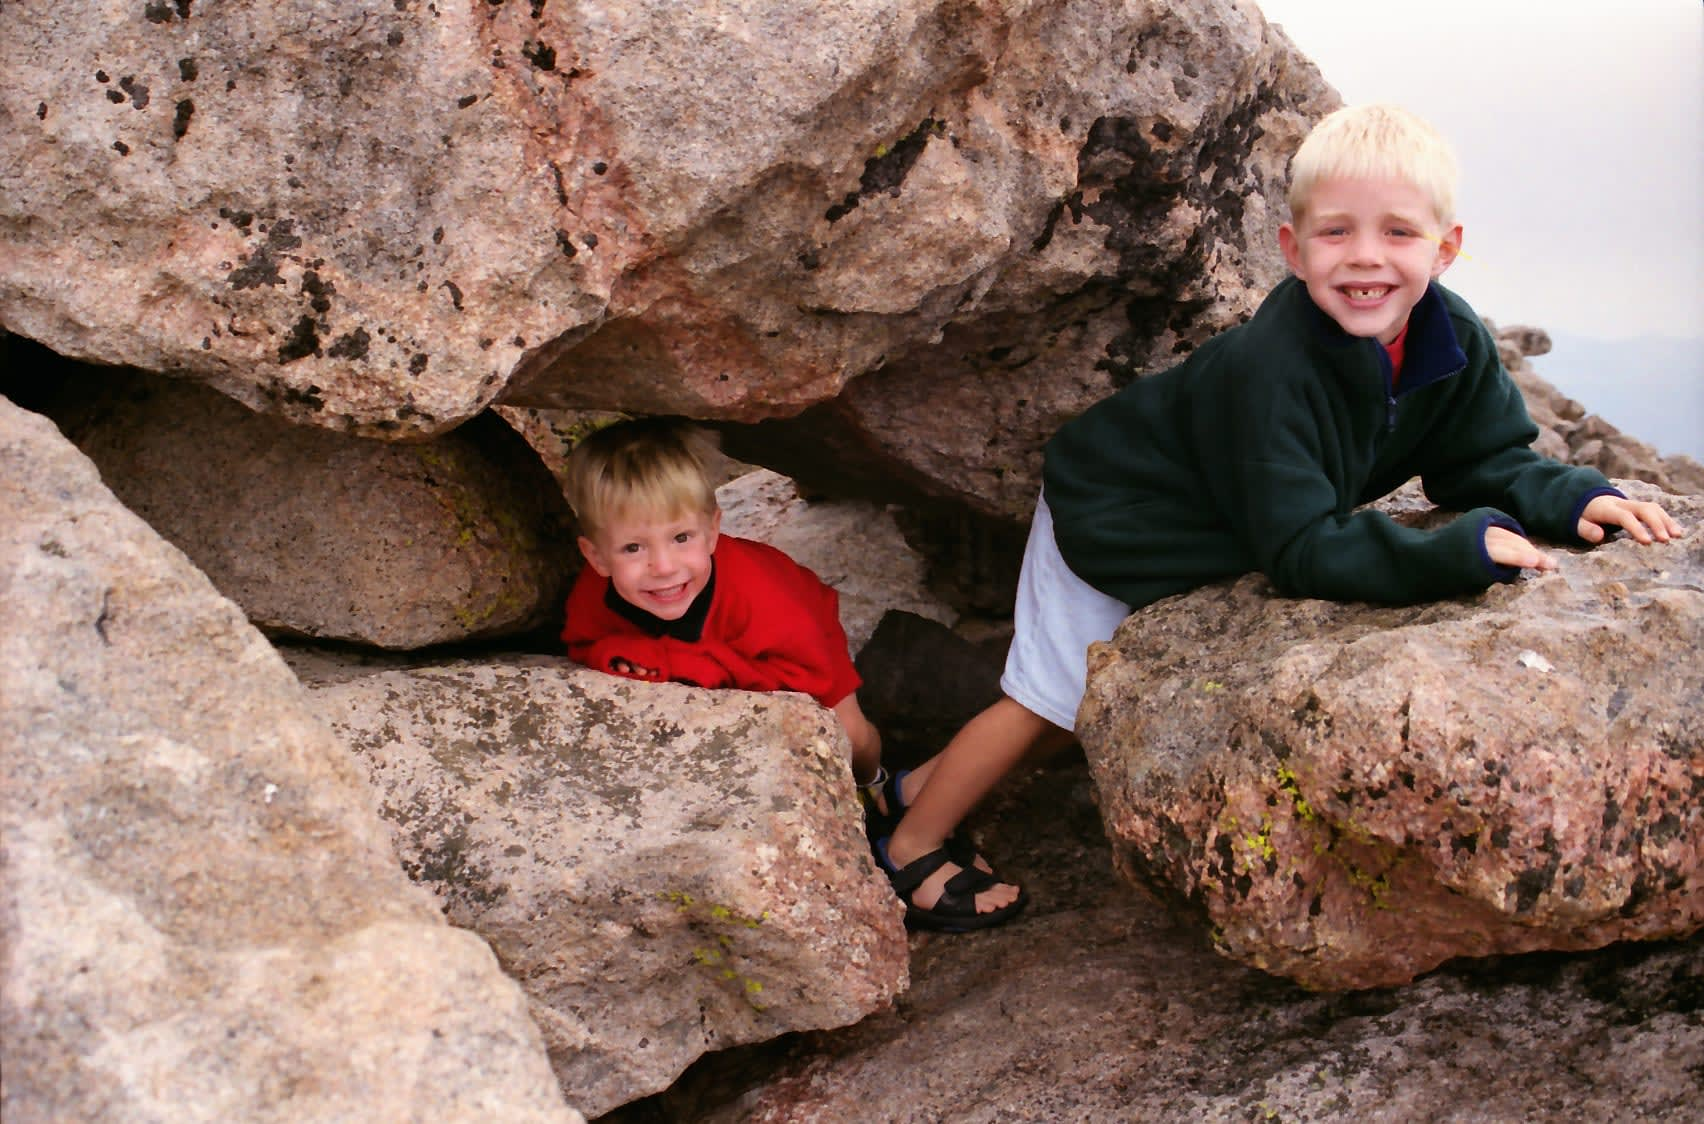 Summit County Hikes with the Kiddos